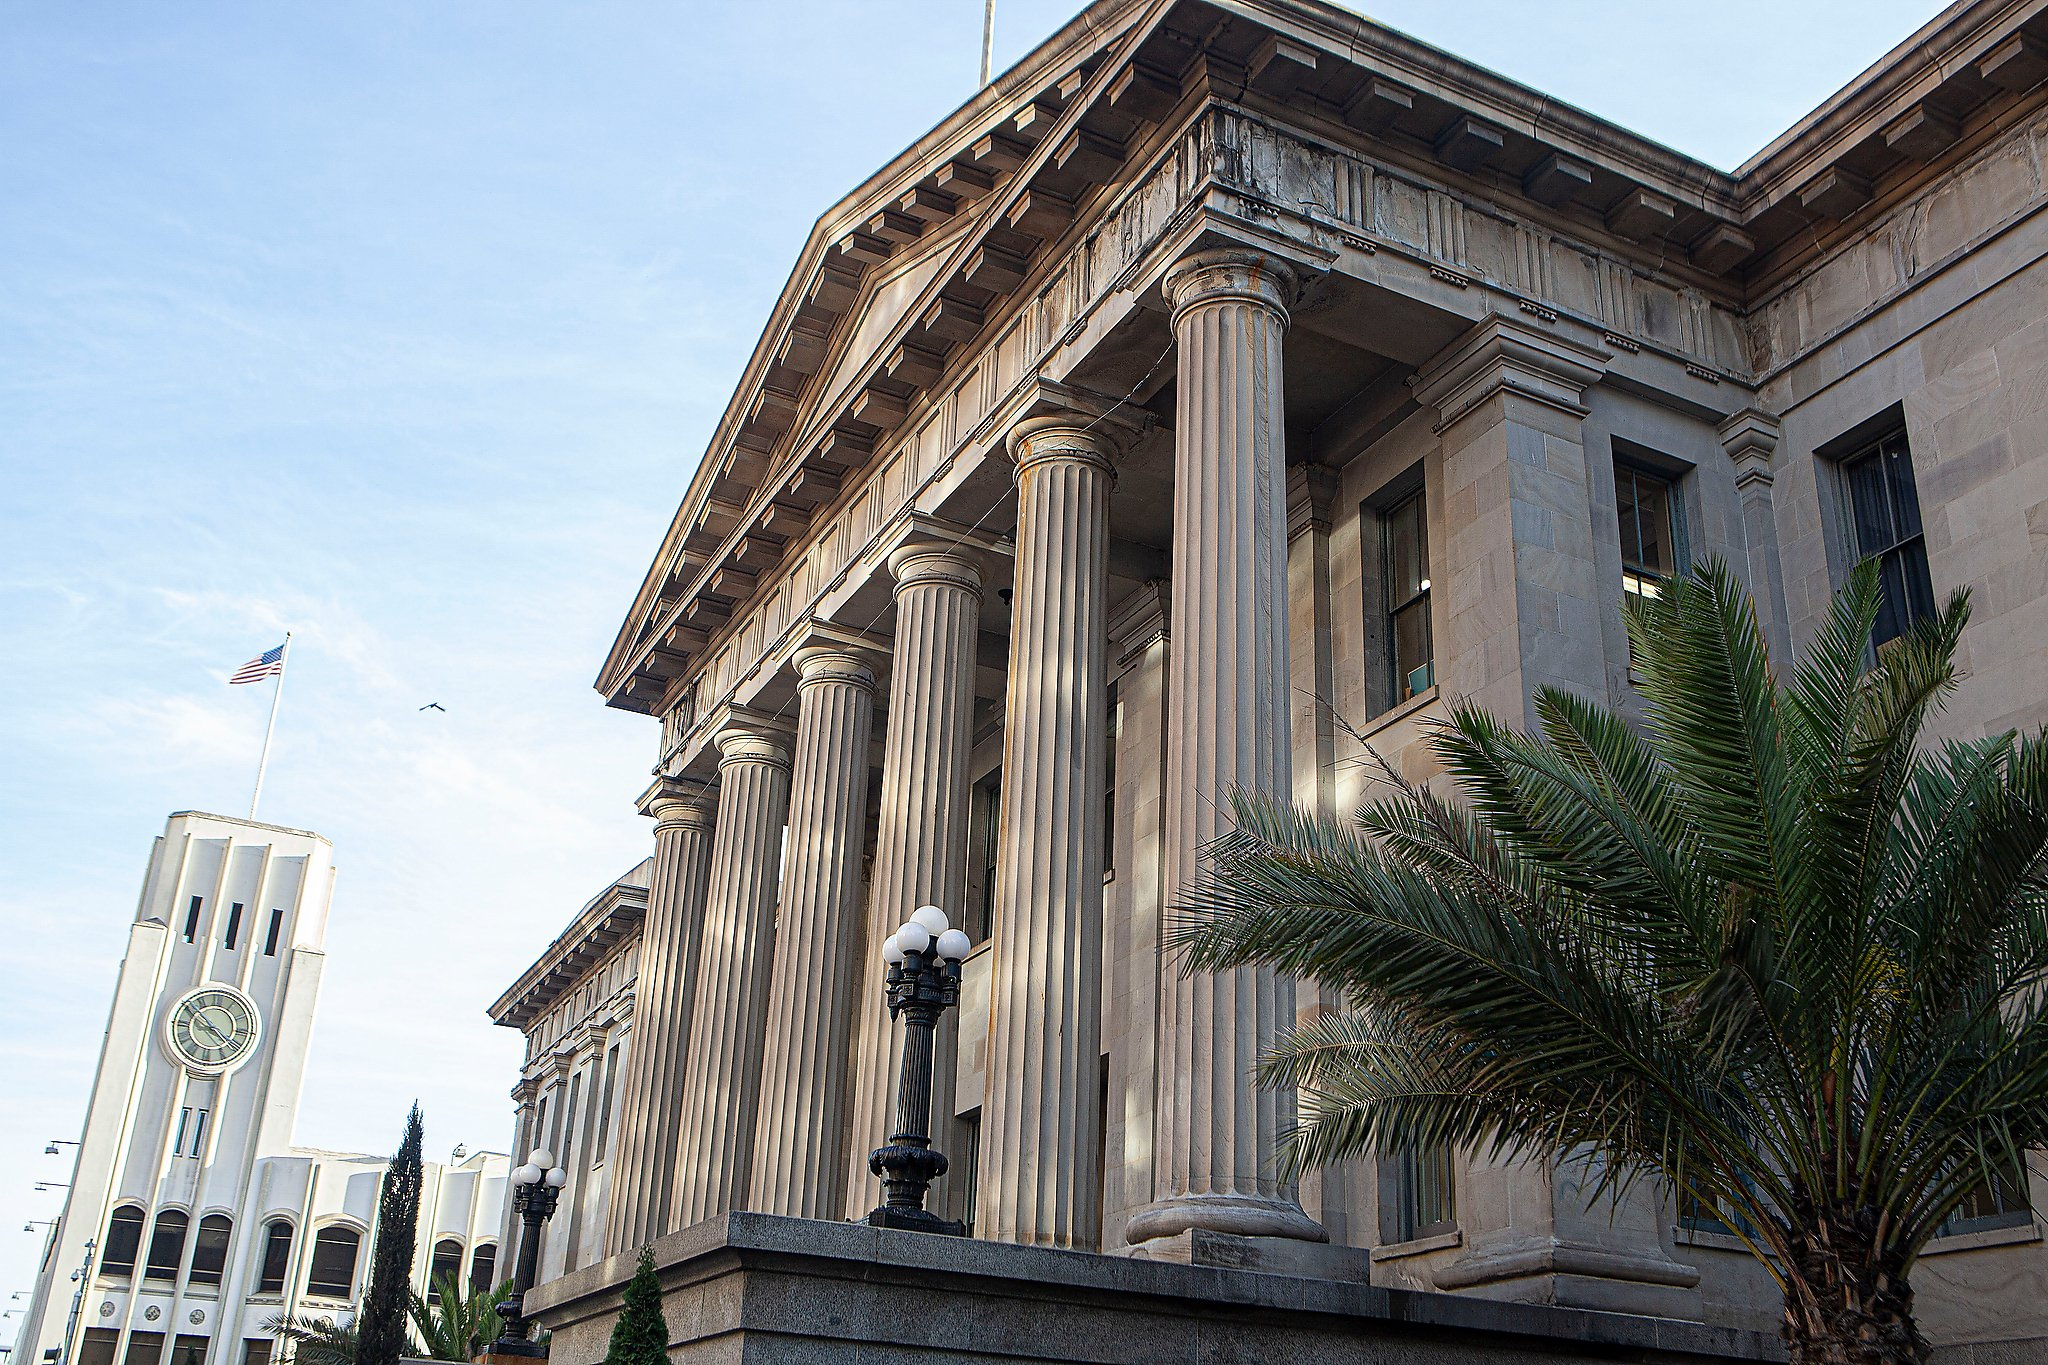 We peeked inside San Francisco's incredible Old Mint building